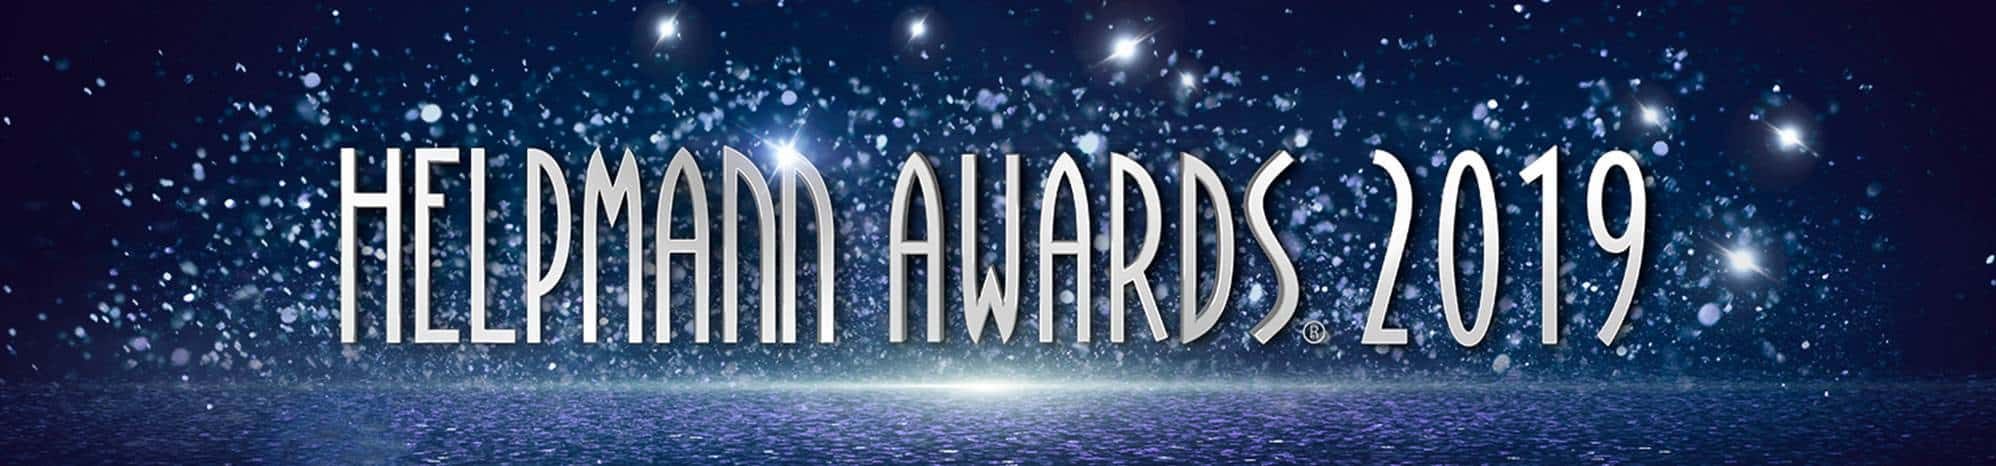 Scene News: 19th annual Helpmann Awards Arts Centre Melbourne - Presenters and Performers announced